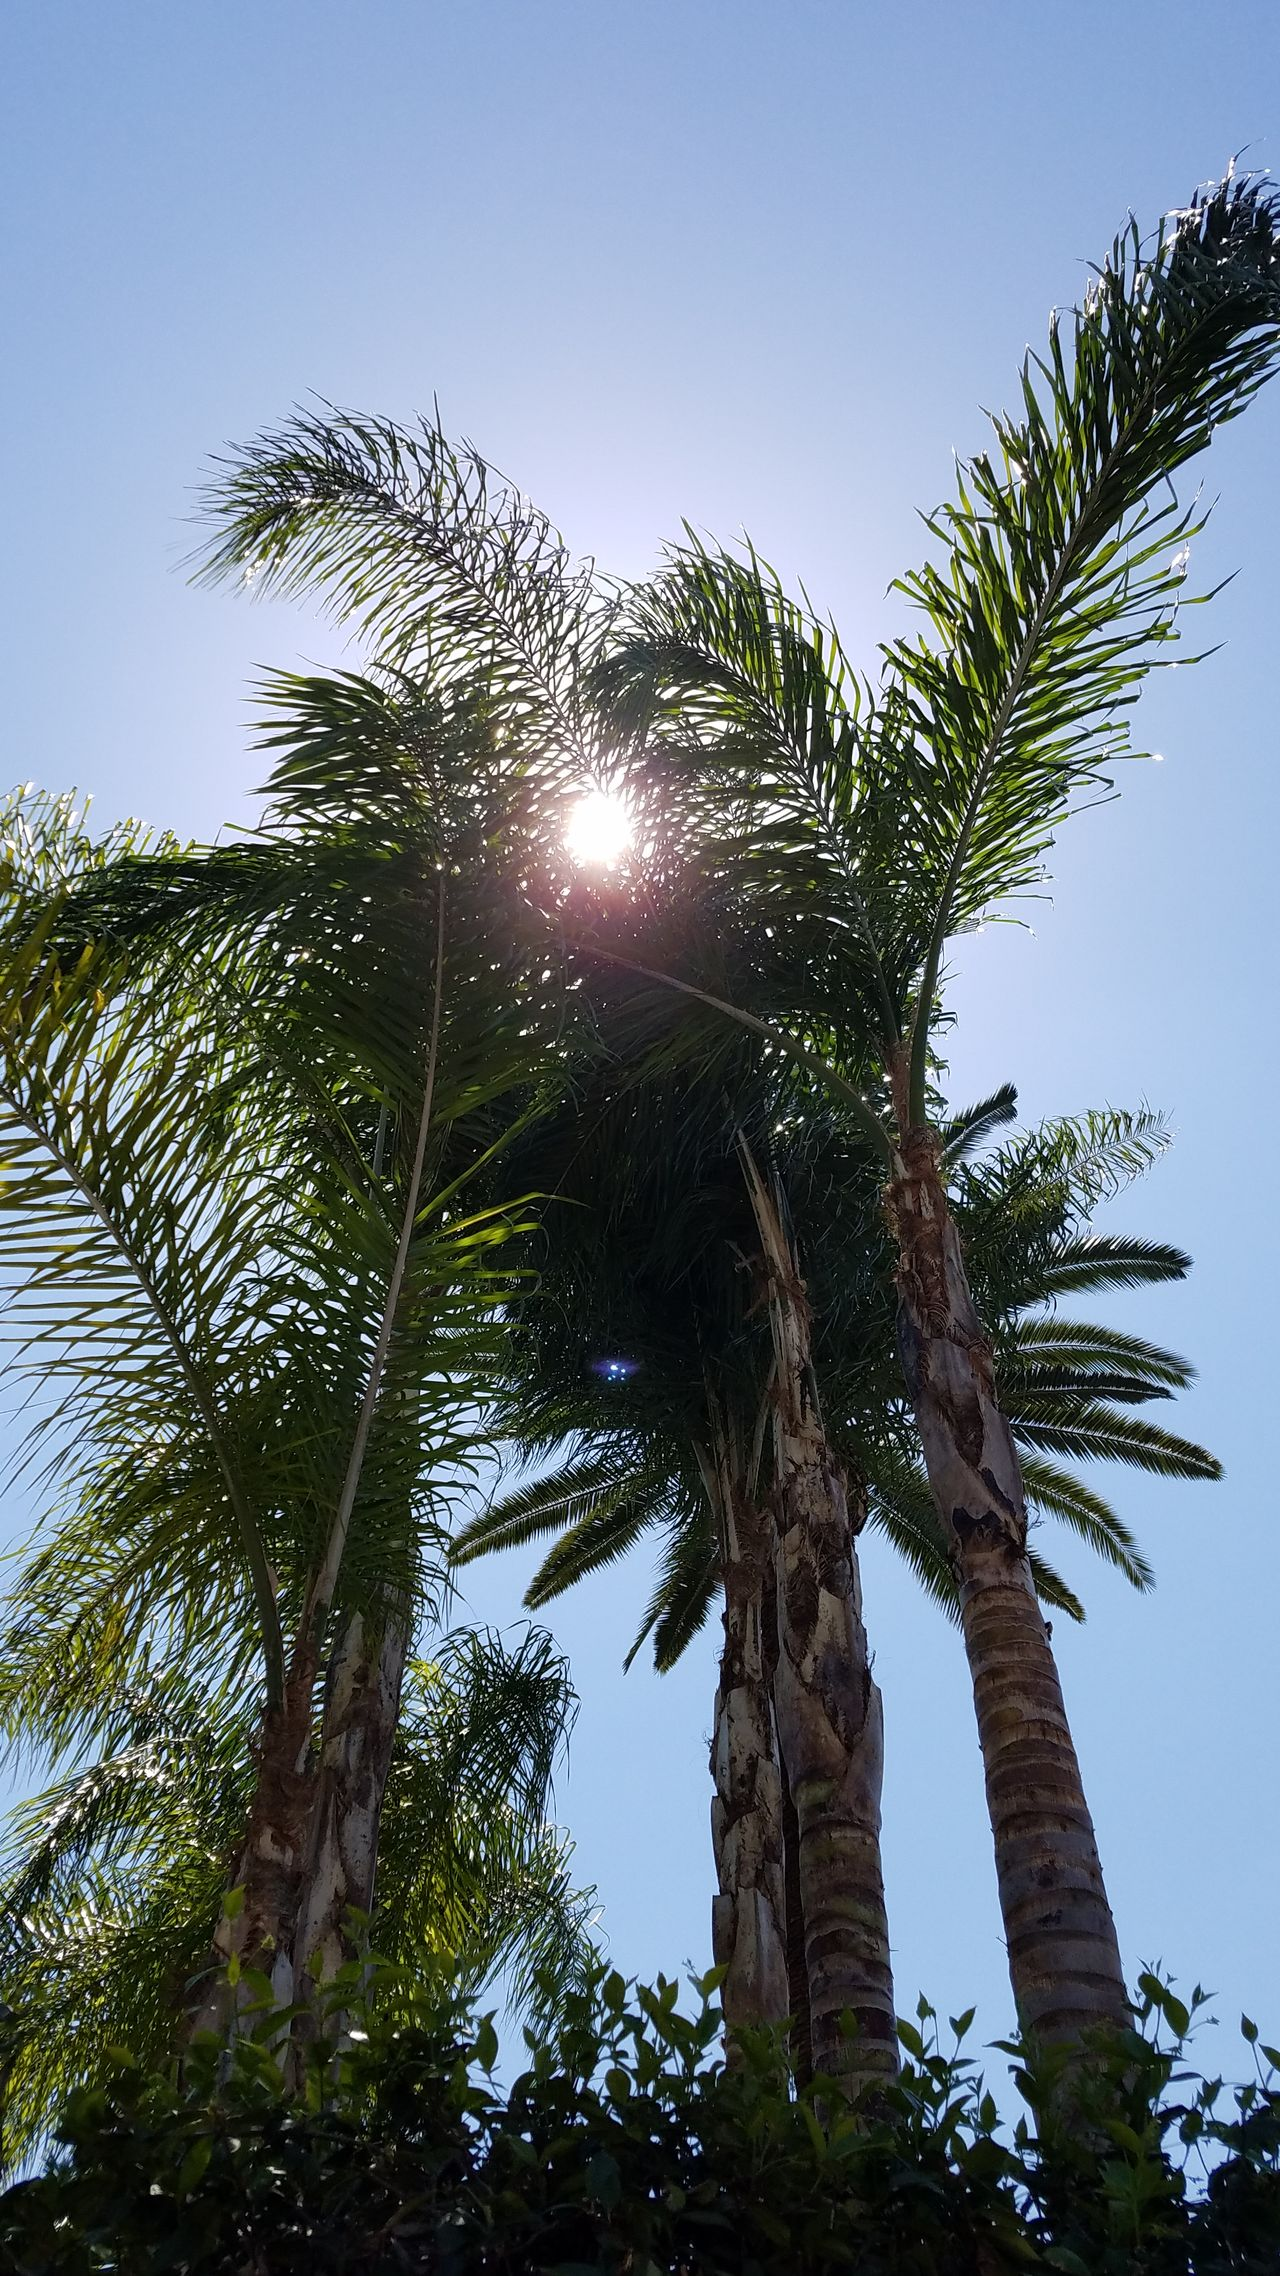 Natural Light No Edit Palm Trees Walking The Streets Beauty In Nature No People Growth Low Angle View Nature Leaf Street Photography Still Life Photography Fine Art Photgraphy Copy Space Check This Out Shadow And Light Sunlight Sun Sun Through Trees Relaxing In The Sun Leisure Activity Simple Outdoors Sky